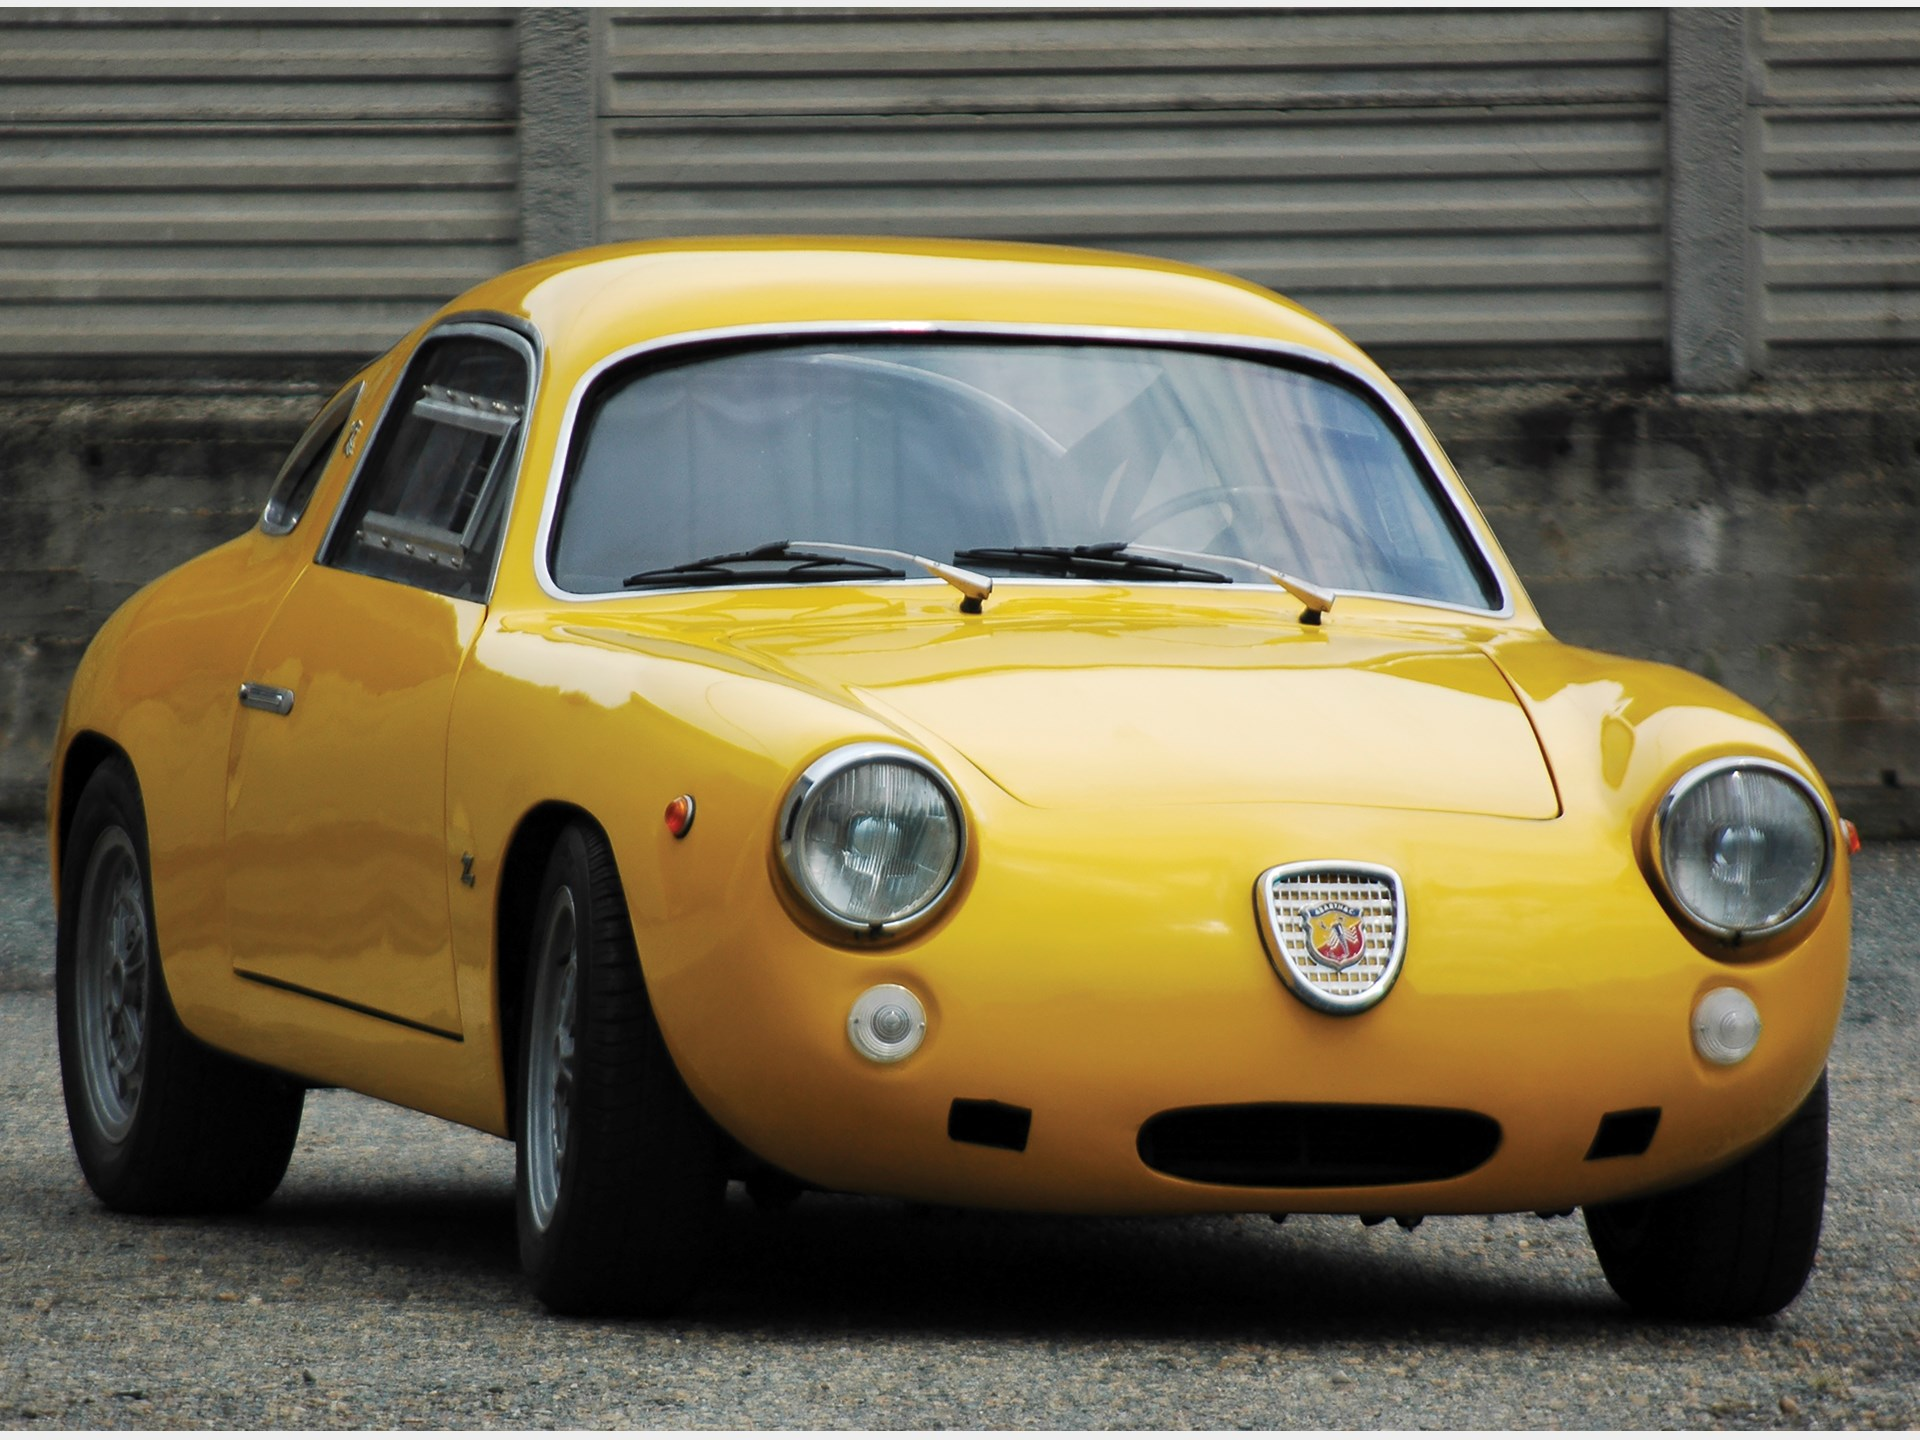 RM Sotheby's - 1961 Fiat-Abarth 750 Record Monza by Zagato | London